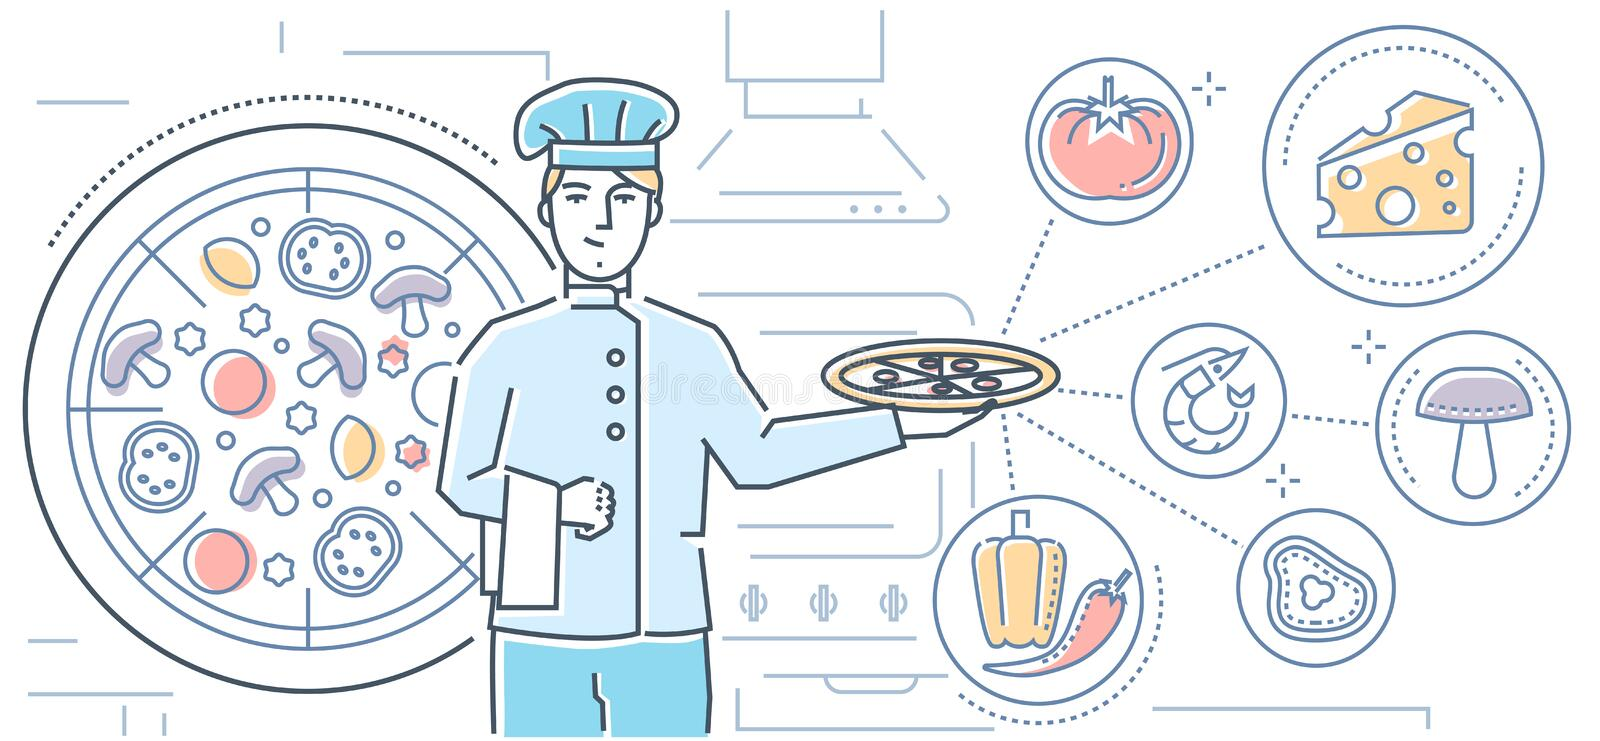 Italian food - colorful line design style illustration. On white background. High quality composition with a cook holding plate with dish, traditional cuisine stock illustration